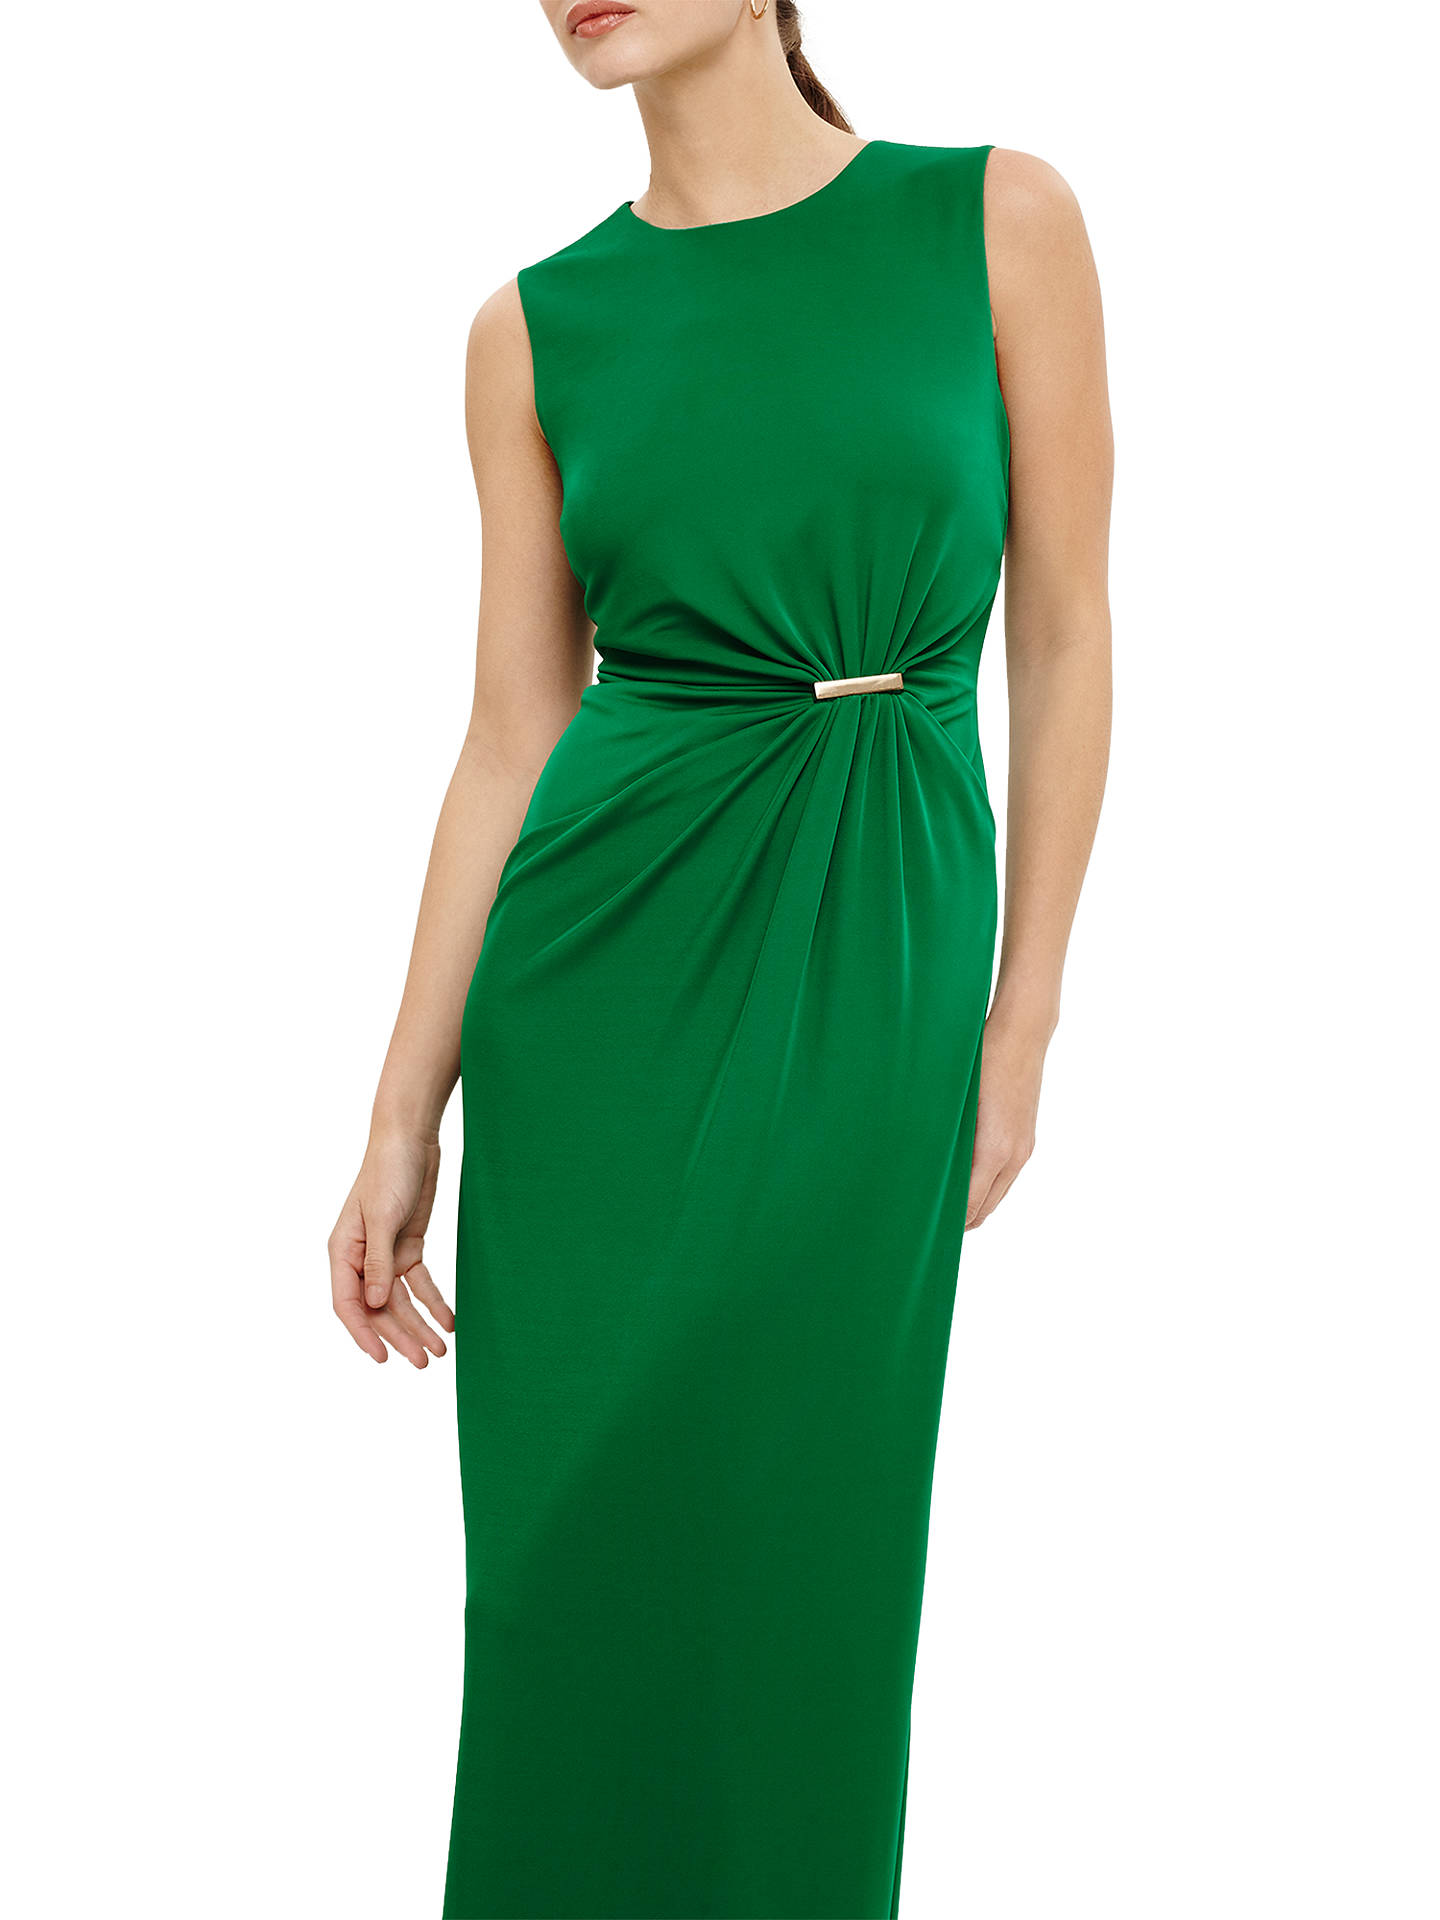 BuyPhase Eight Talisa Maxi Dress, Emerald, 8 Online at johnlewis.com